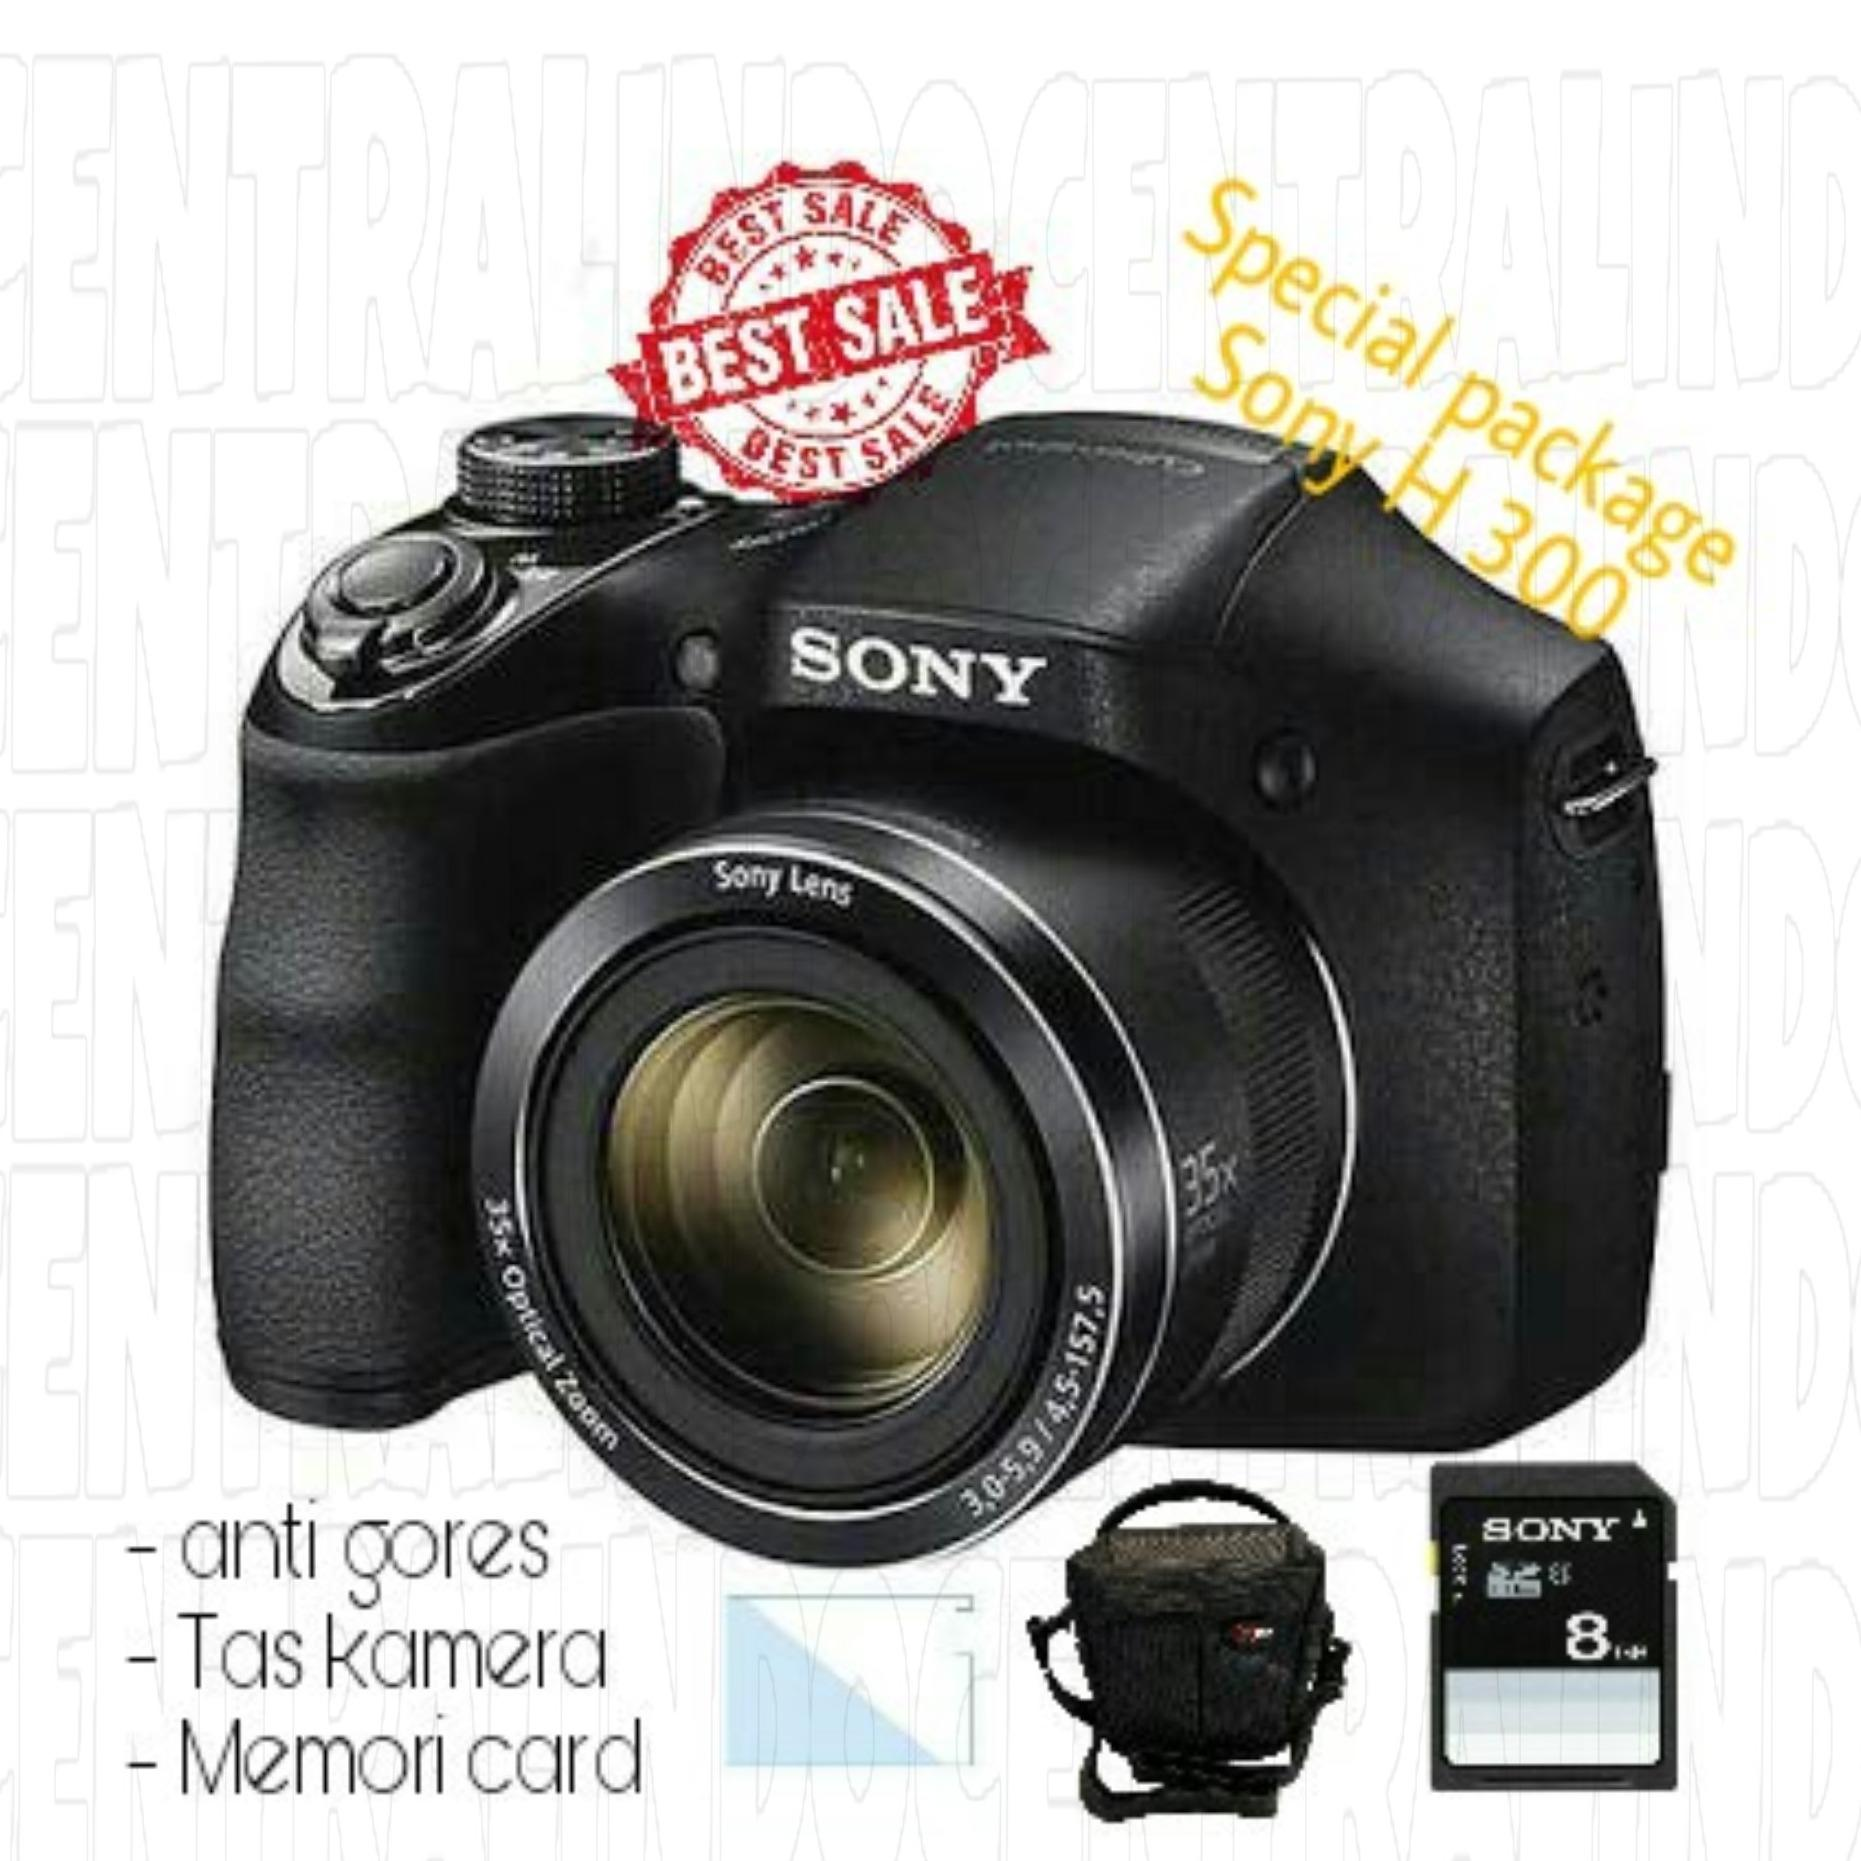 Harga Special Package Kamera Sony H300 With Acc Sony Online